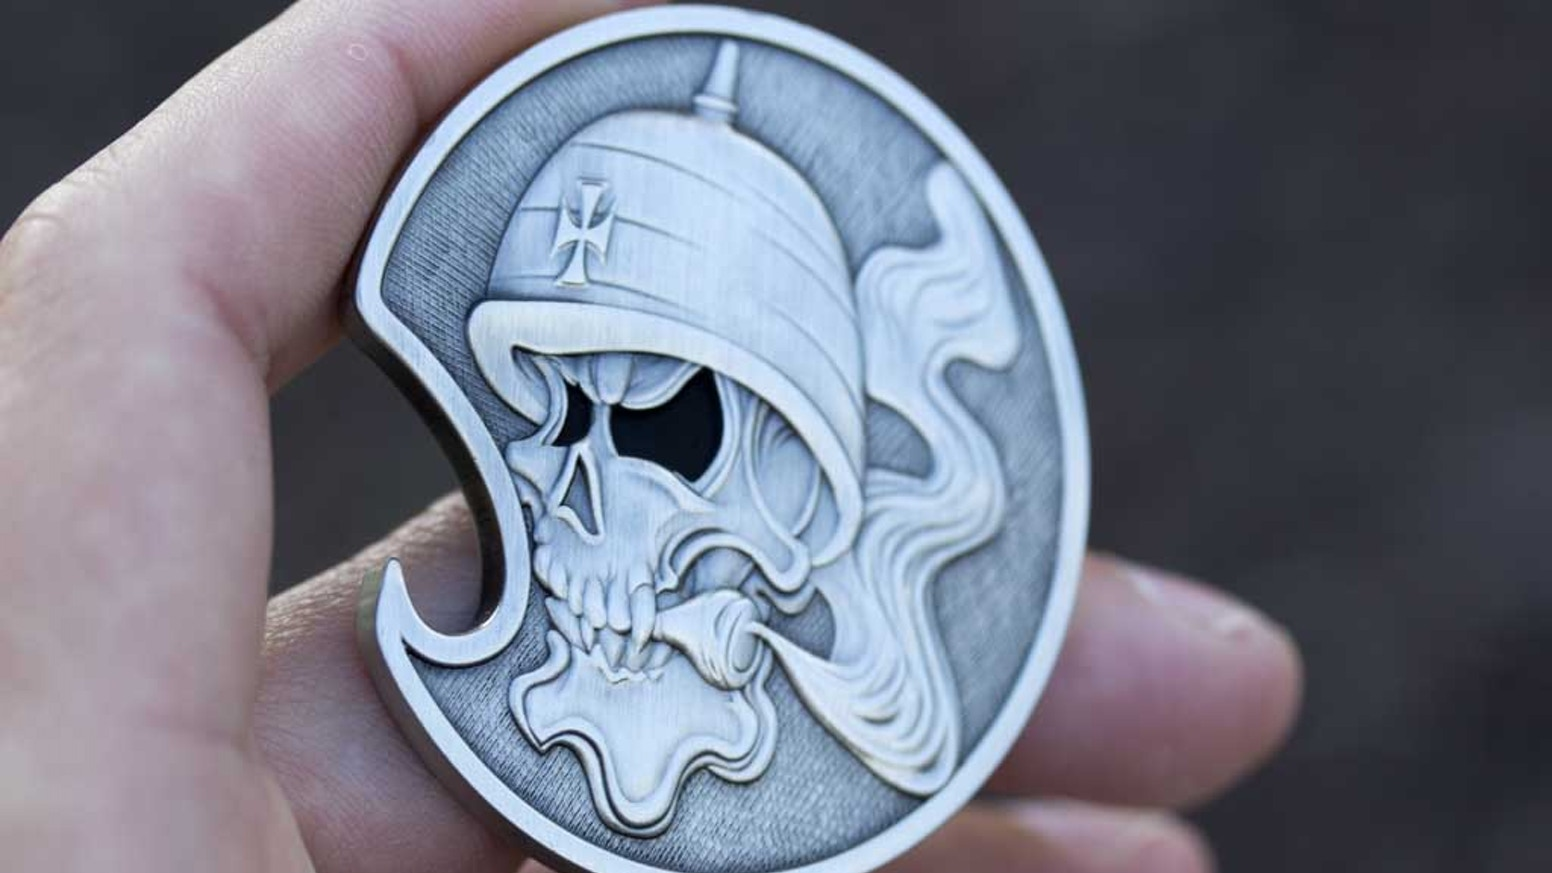 Solid Brass Motorcycle Creed Challenge Coin / Bottle Opener! by